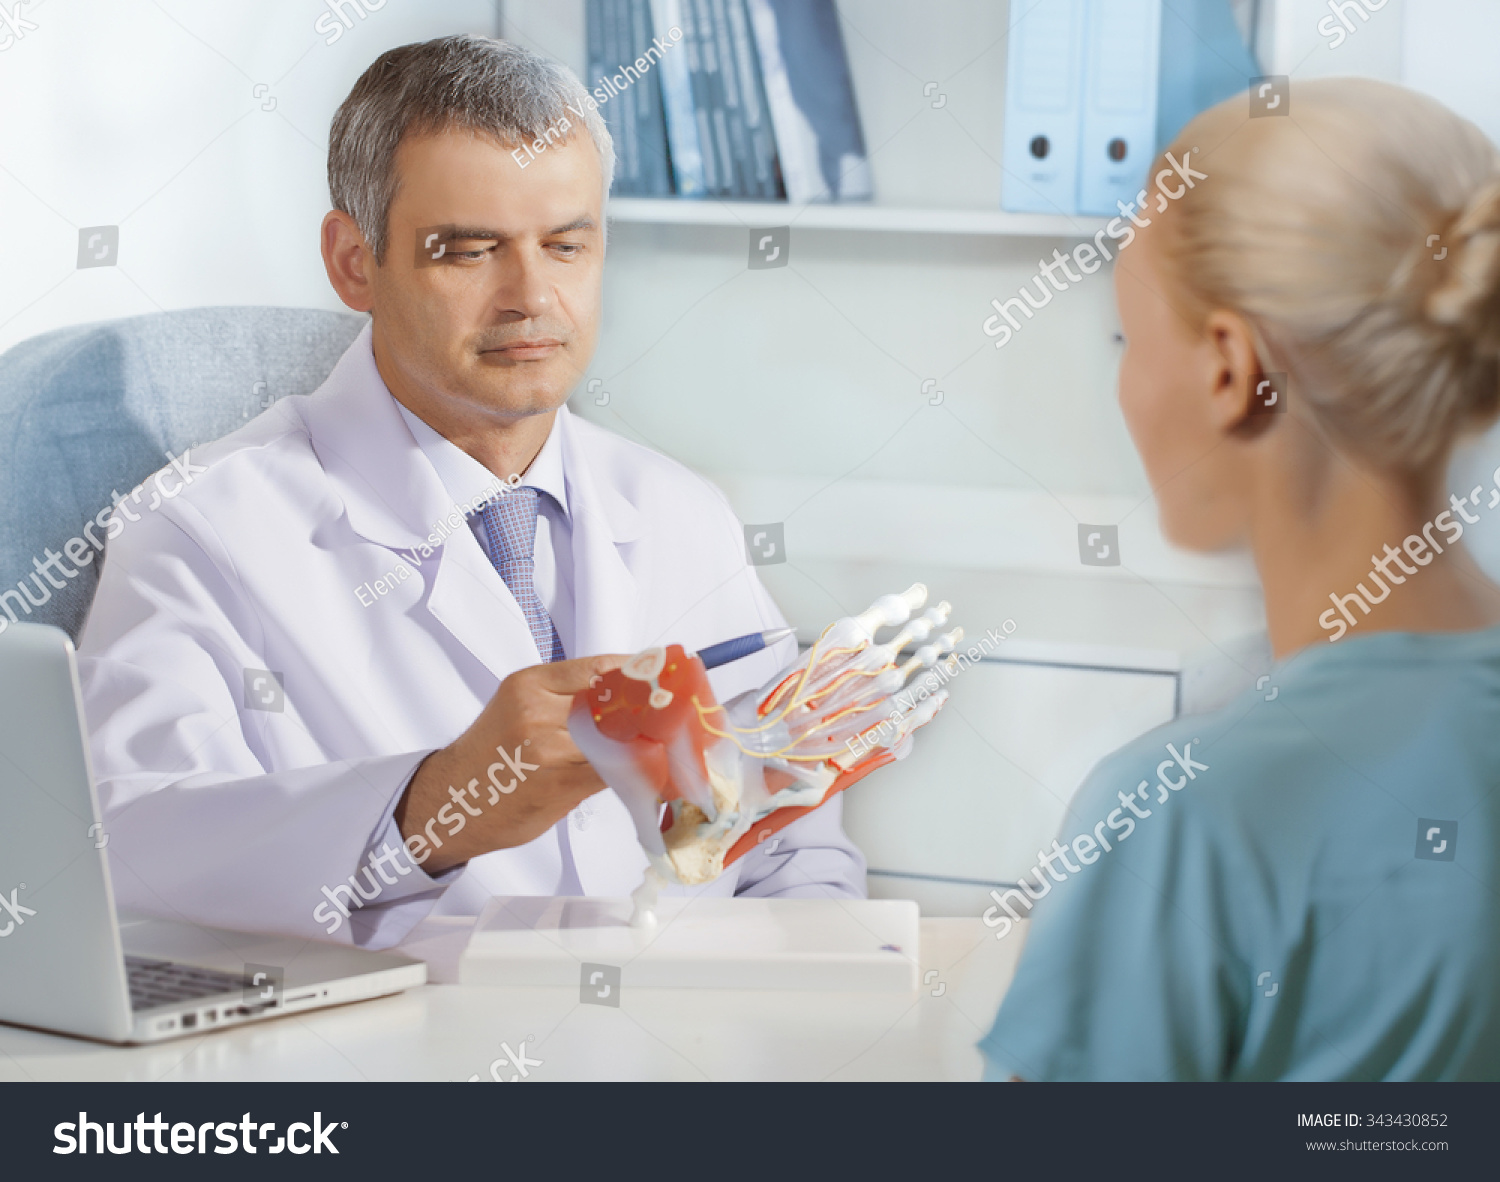 Orthopedic Doctor In His Office With The Model Of Feet And Patient